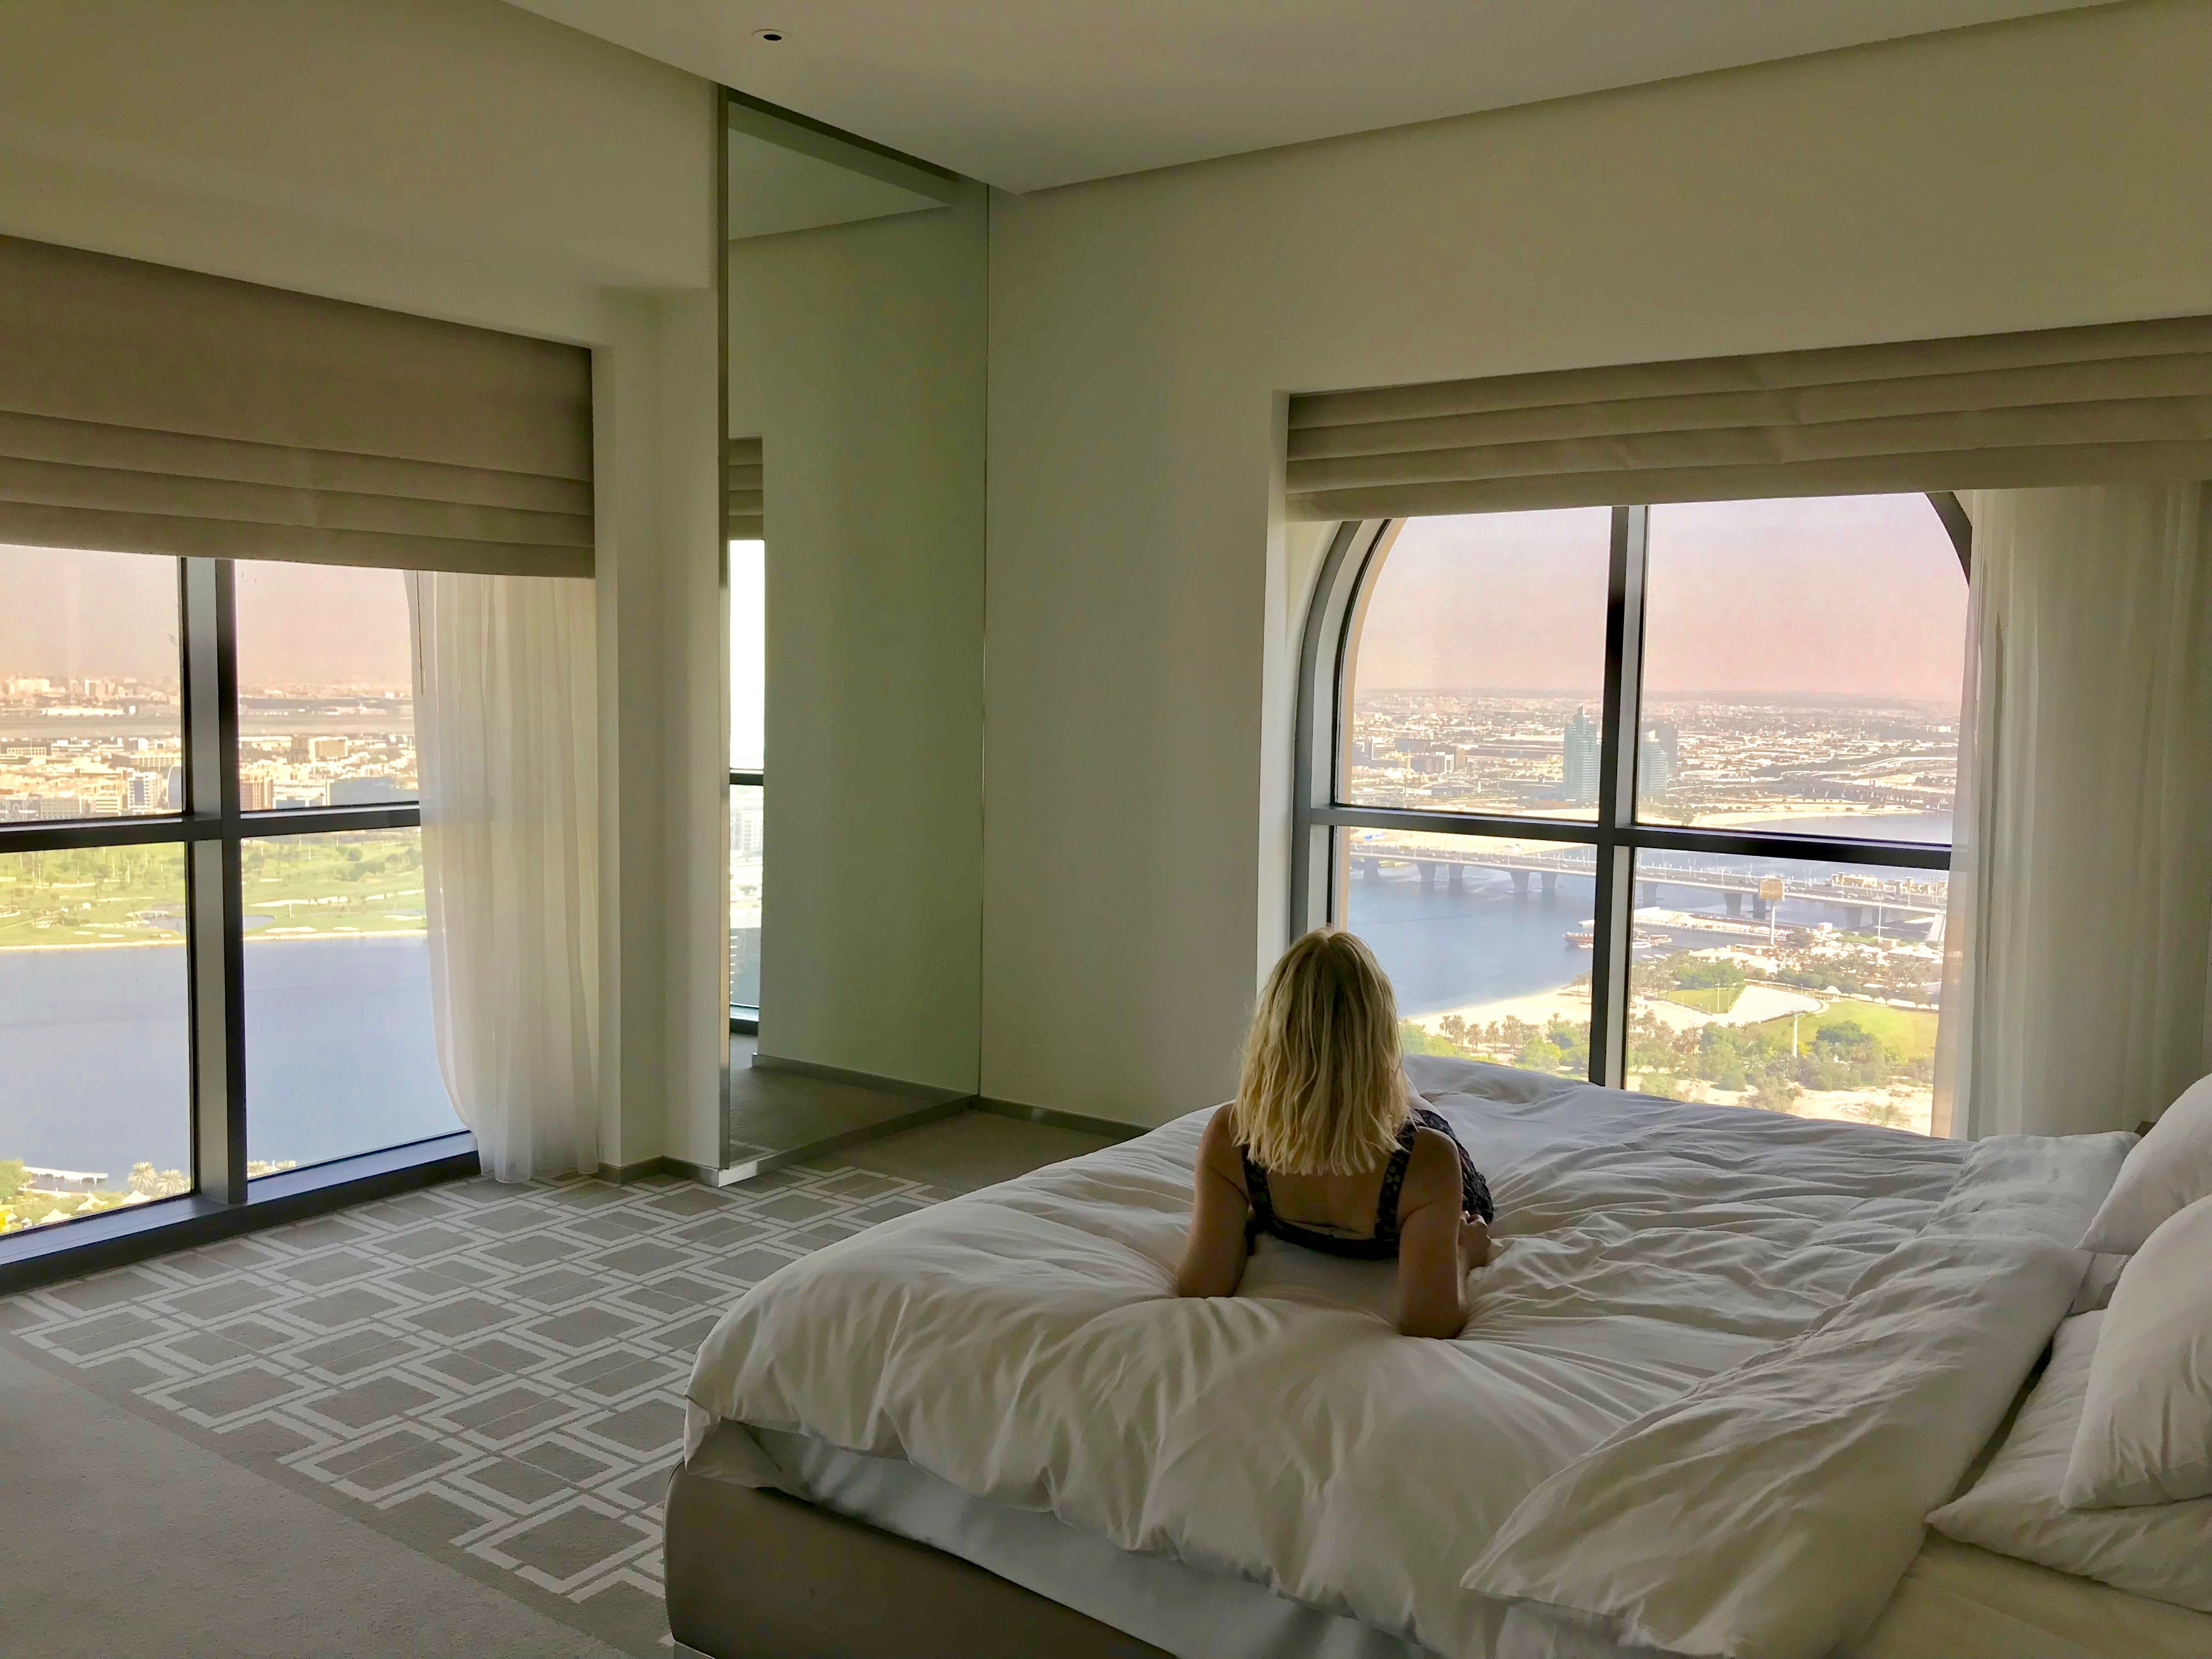 From exceptional serviceto comfortable beds and a chic modern design - the Hyatt Regency Dubai Creek Heights will truly make your stay in Dubai special. Read more at www.thefivefoottraveler.com